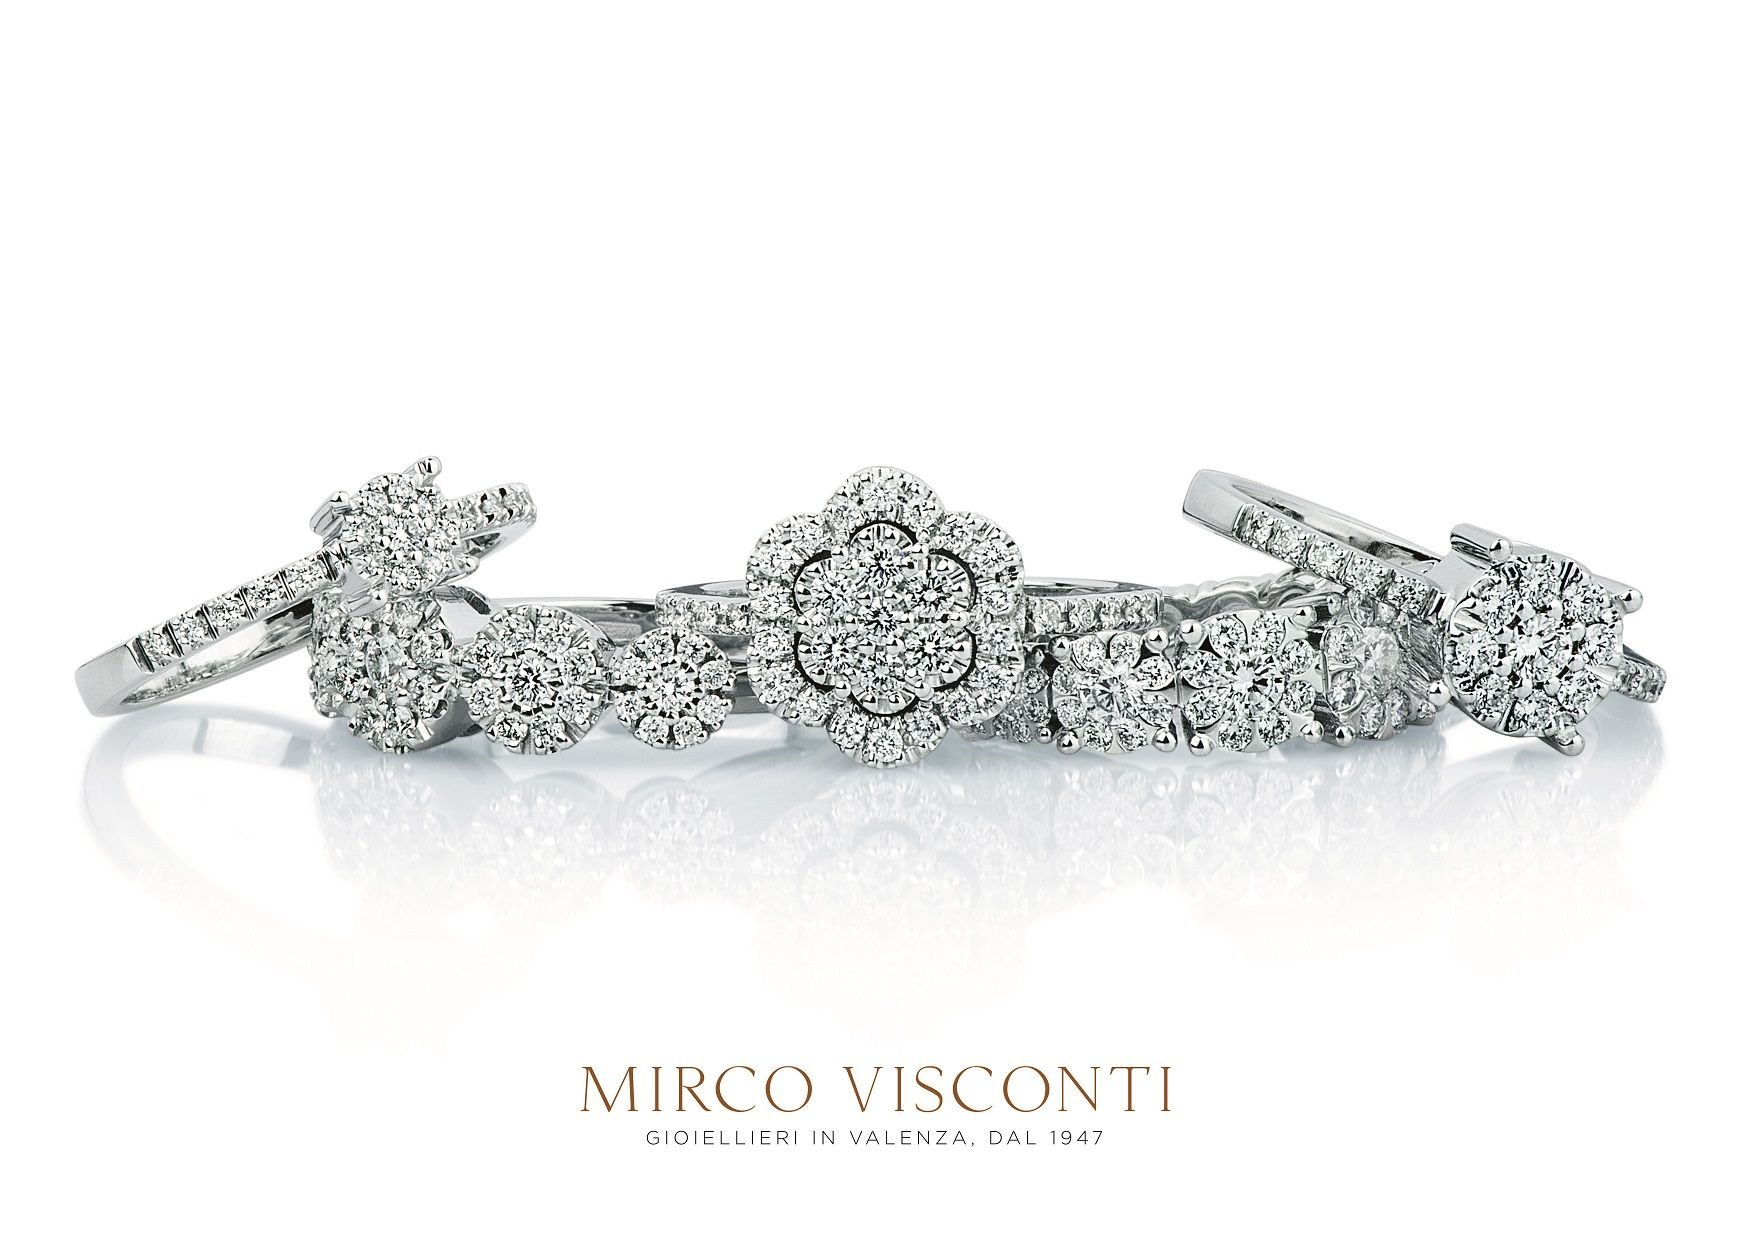 Discover Mirco Visconti's magical jewels exclusively available at Istana's boutique in The Dubai Mall and BurJuman.